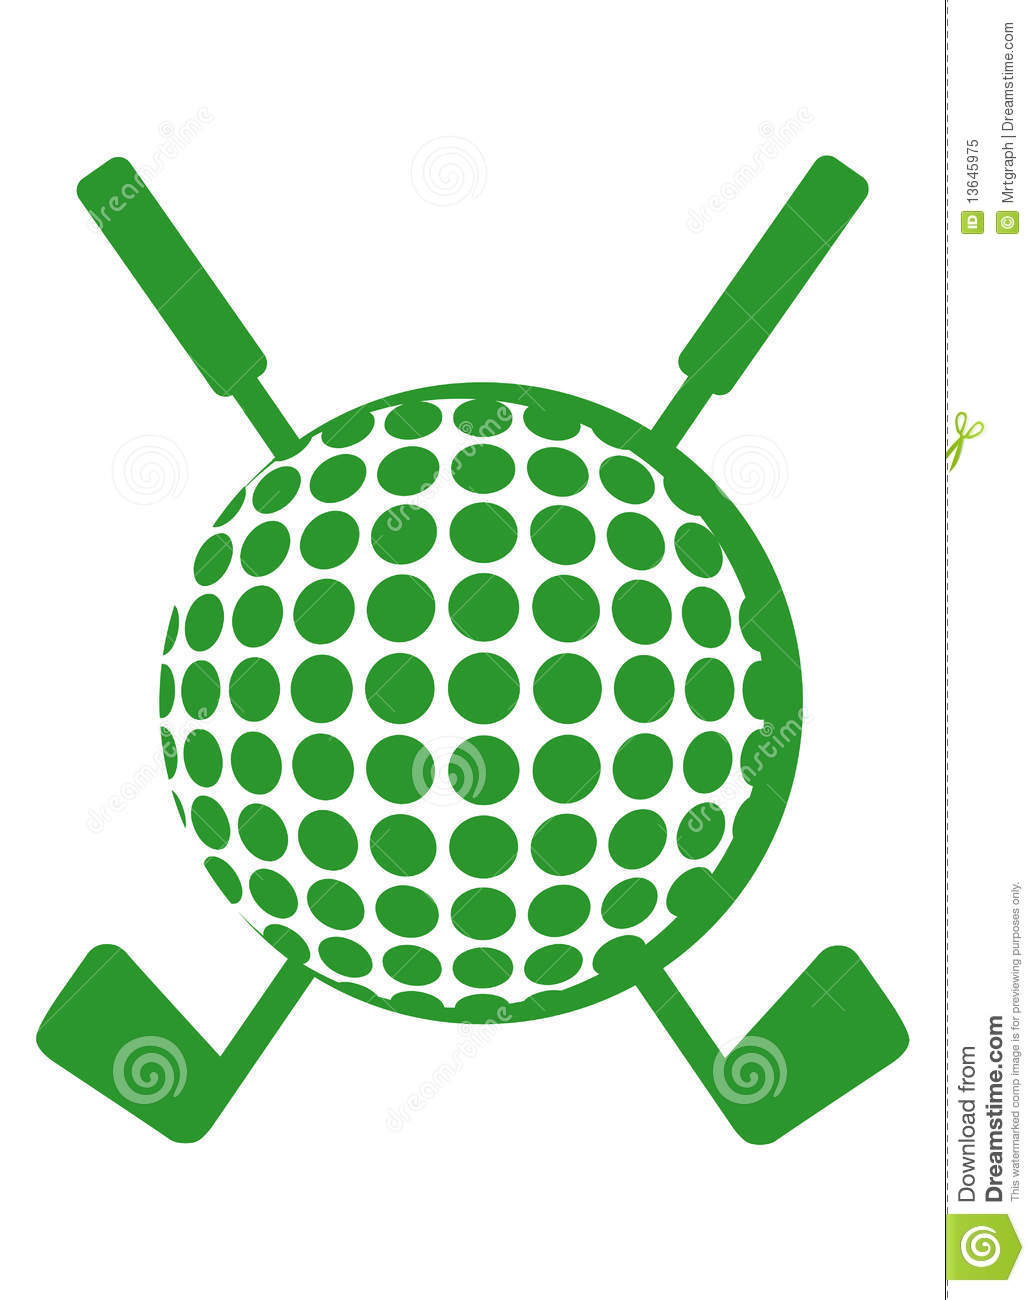 Golf Course clipart golf ball Club Free Clipart Crossed Images